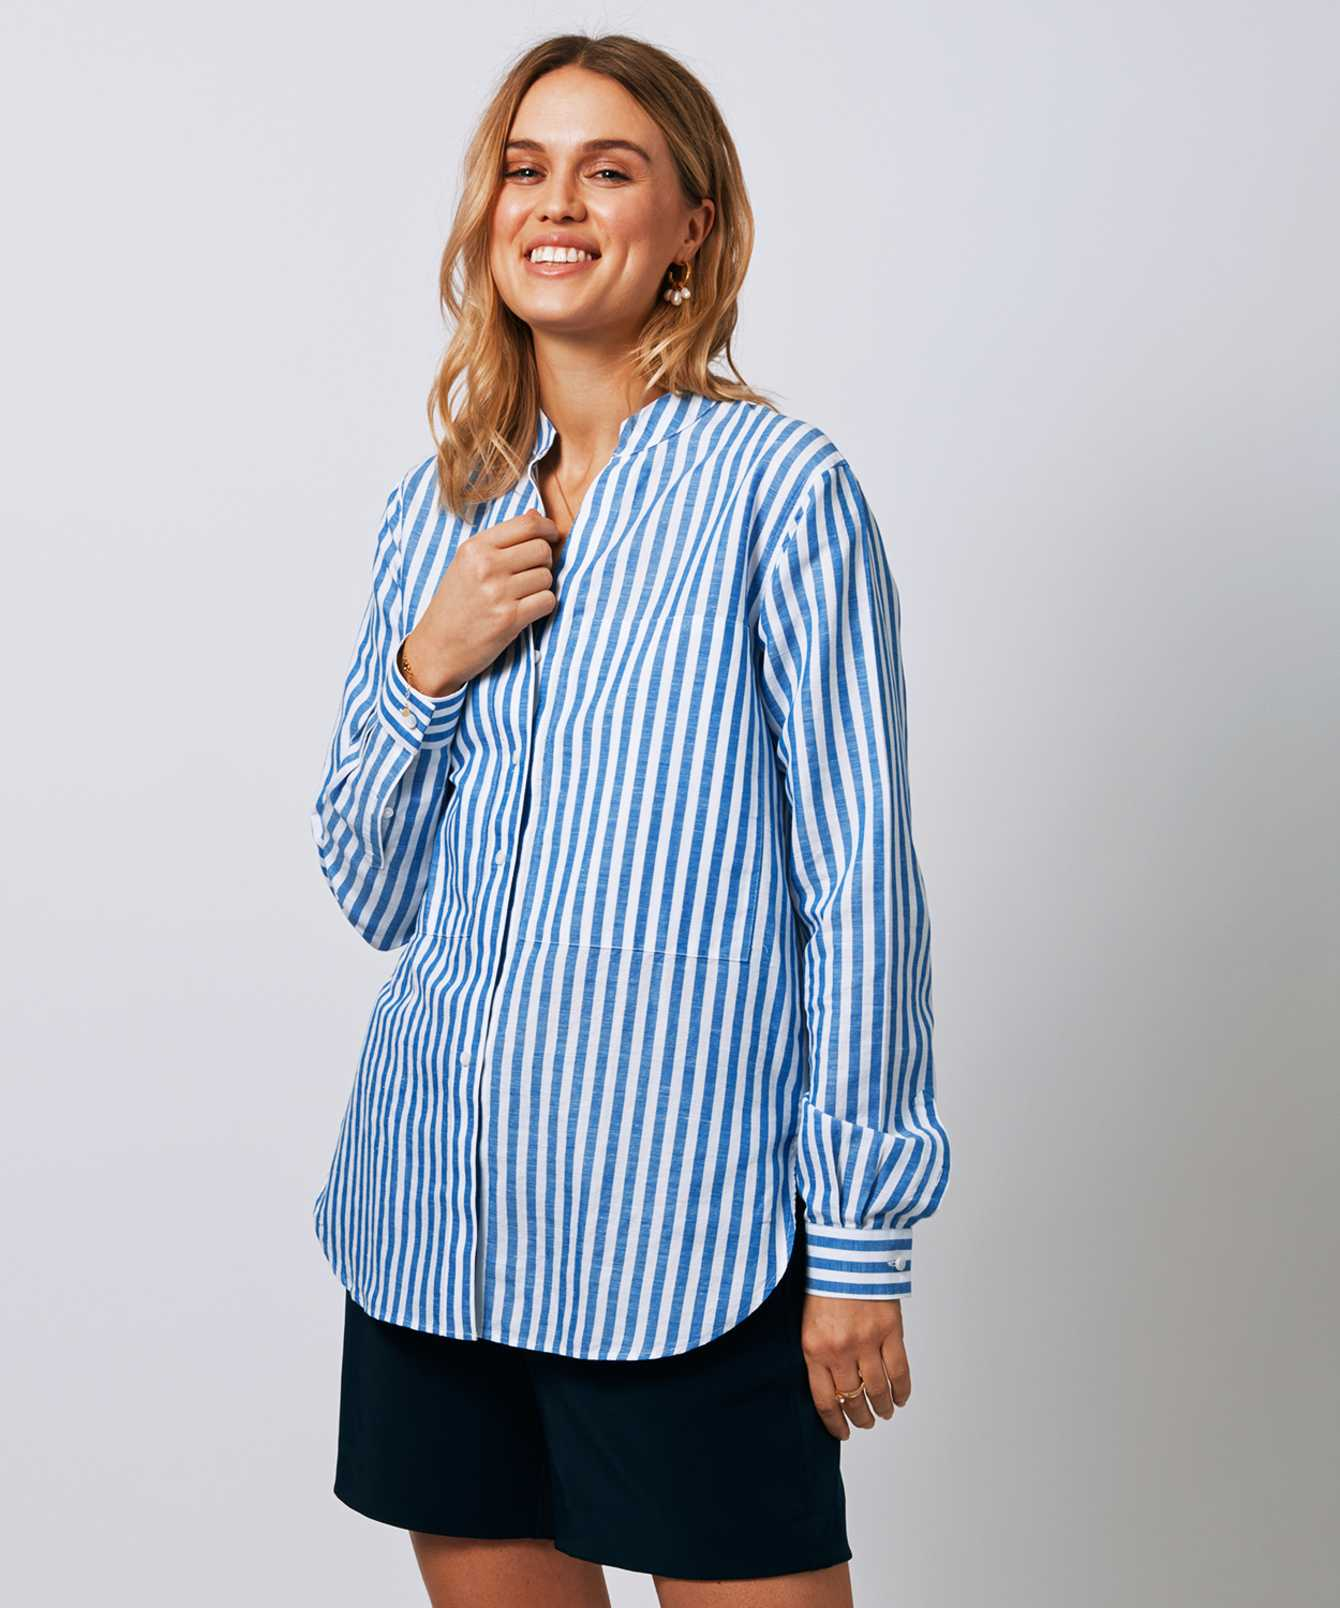 Shirt Tuva Linen Stripe  The Shirt Factory